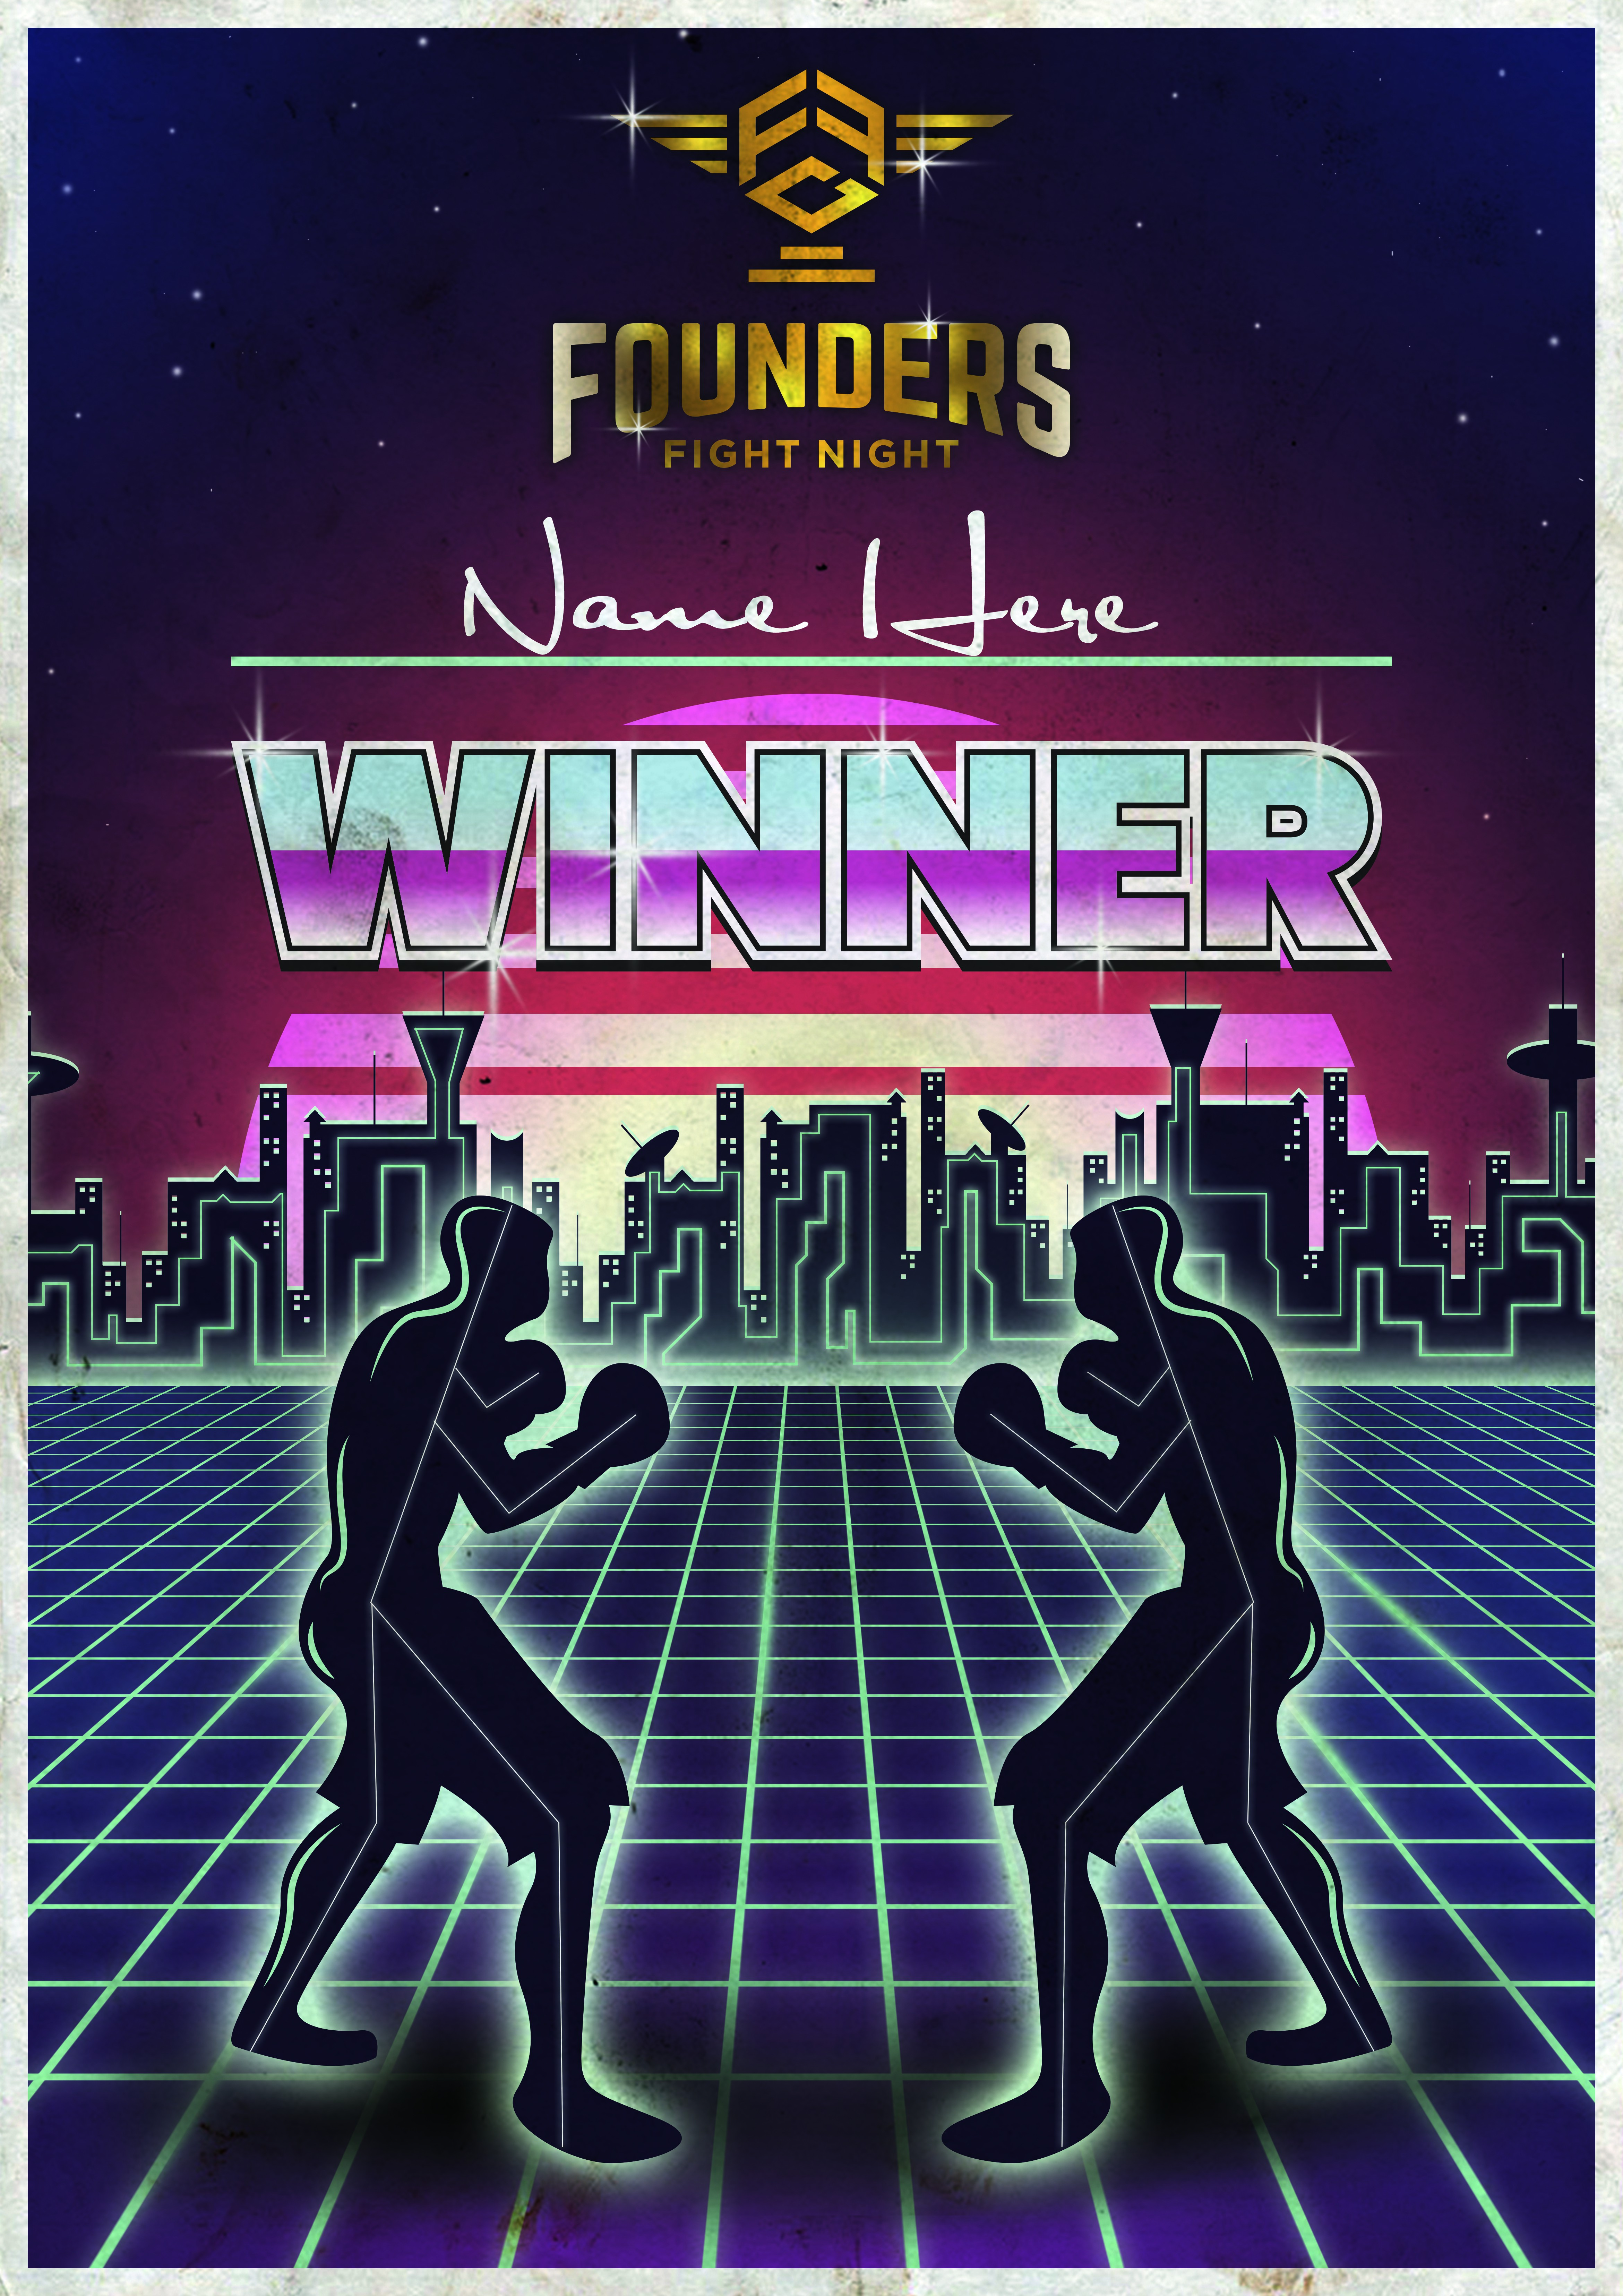 Whoop Whoop!!! The retro-futuristic boxing poster that will be awarded to startup champions!